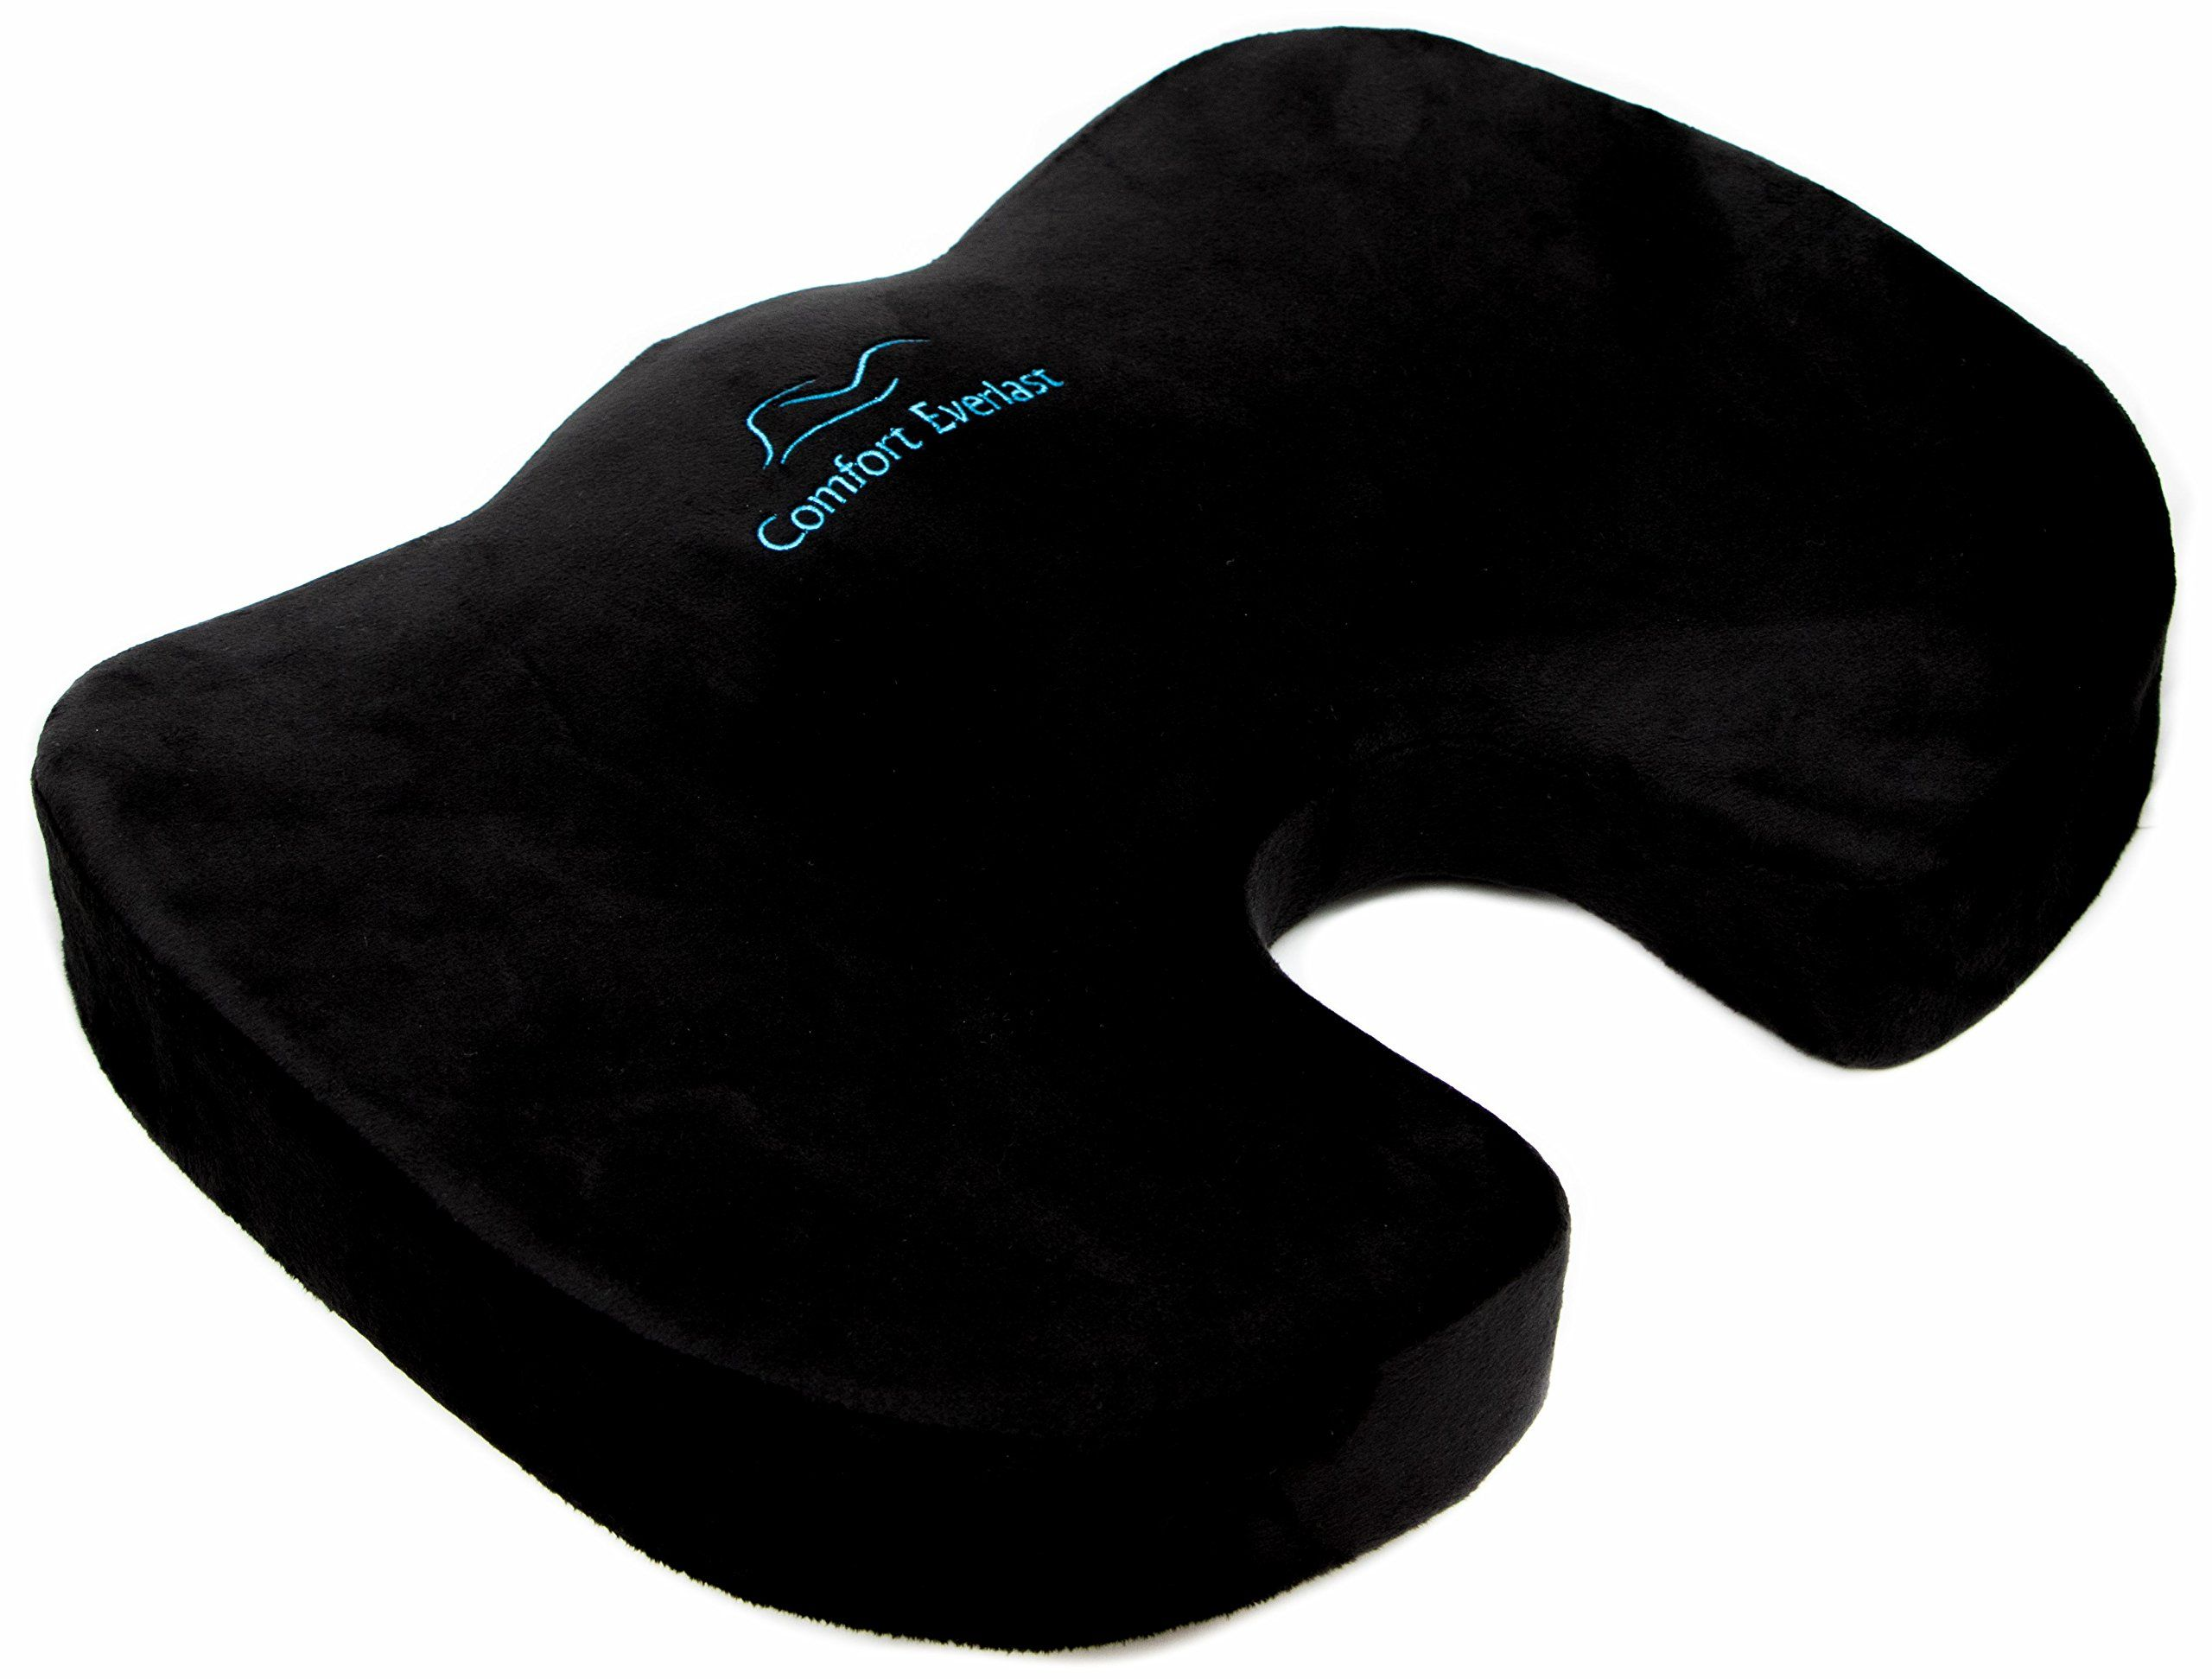 Coccyx Orthopedic Memory Foam Seat Cushion Leading Choice for